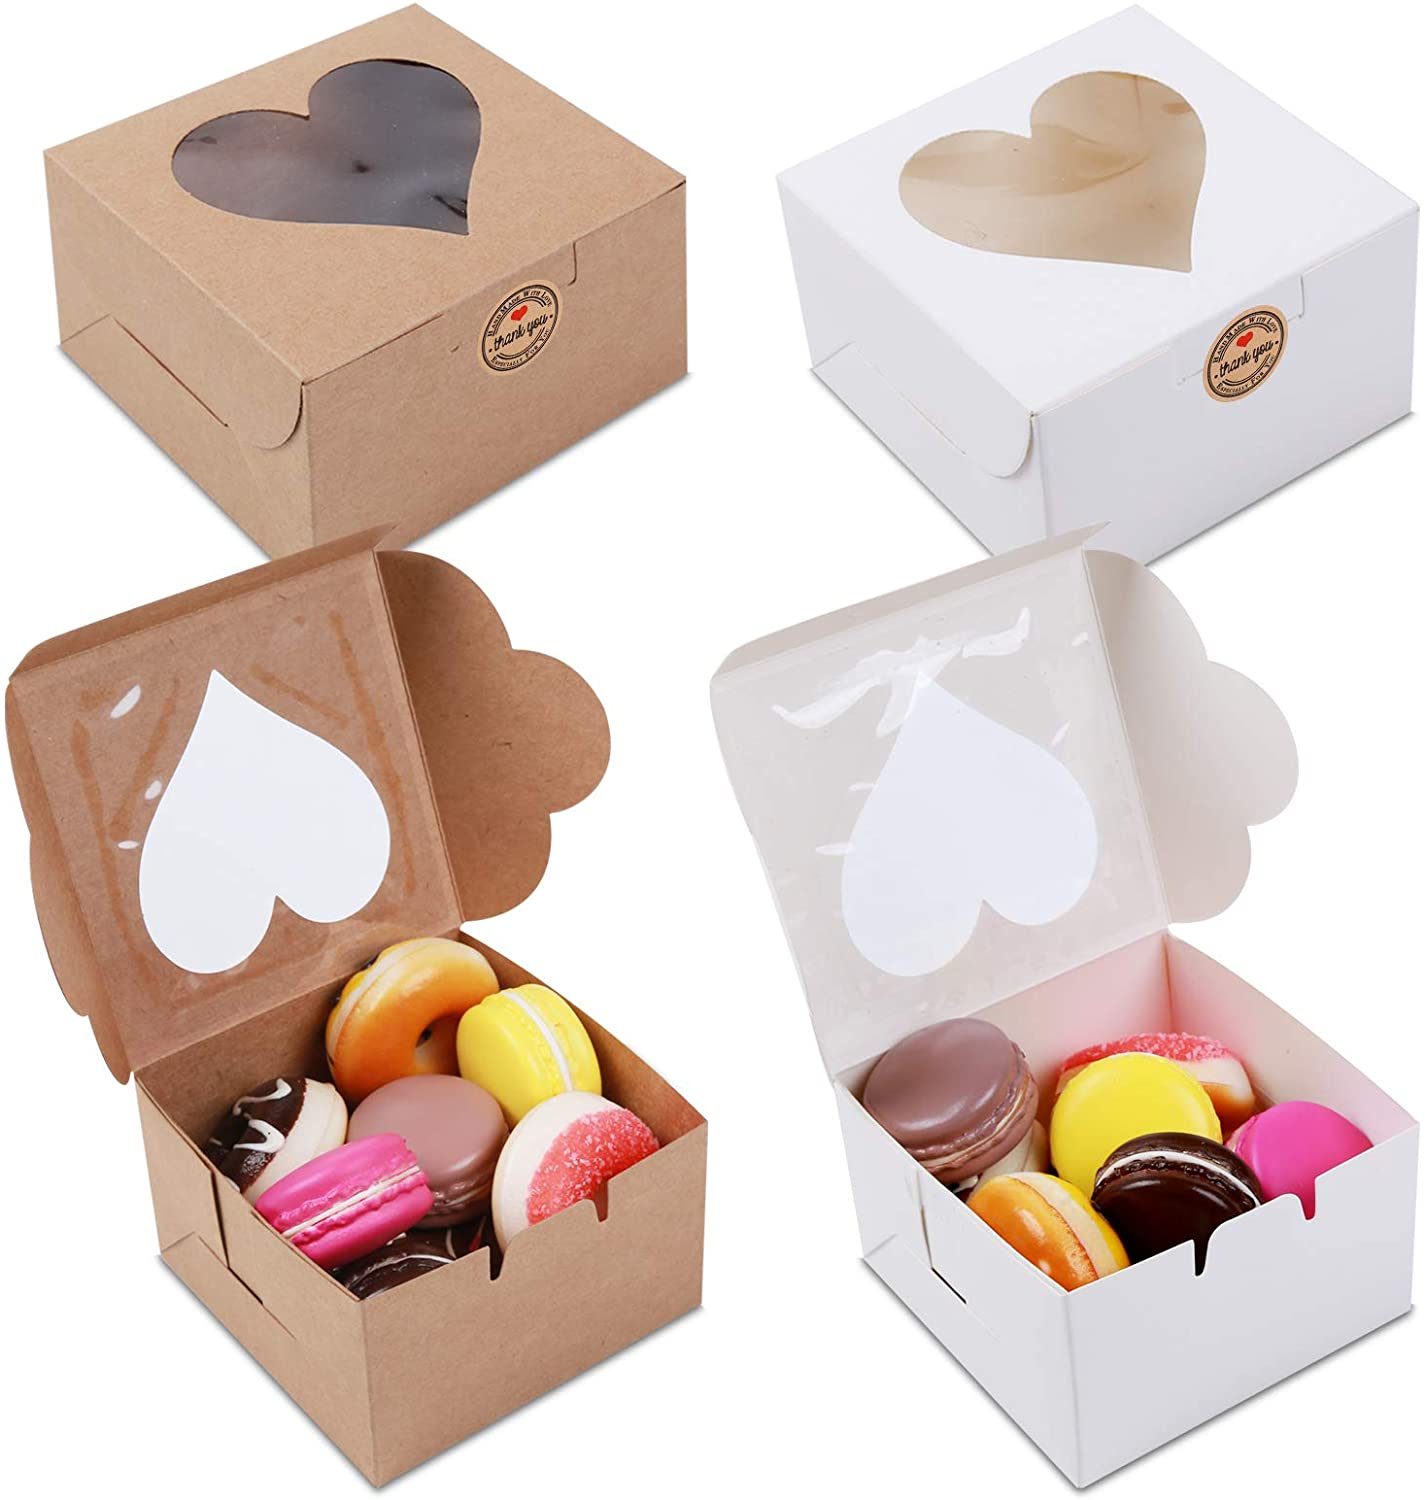 MCART 50 Pack White and Brown Boxes Shaped Sales for sale Bakery Win Heart Cheap sale with